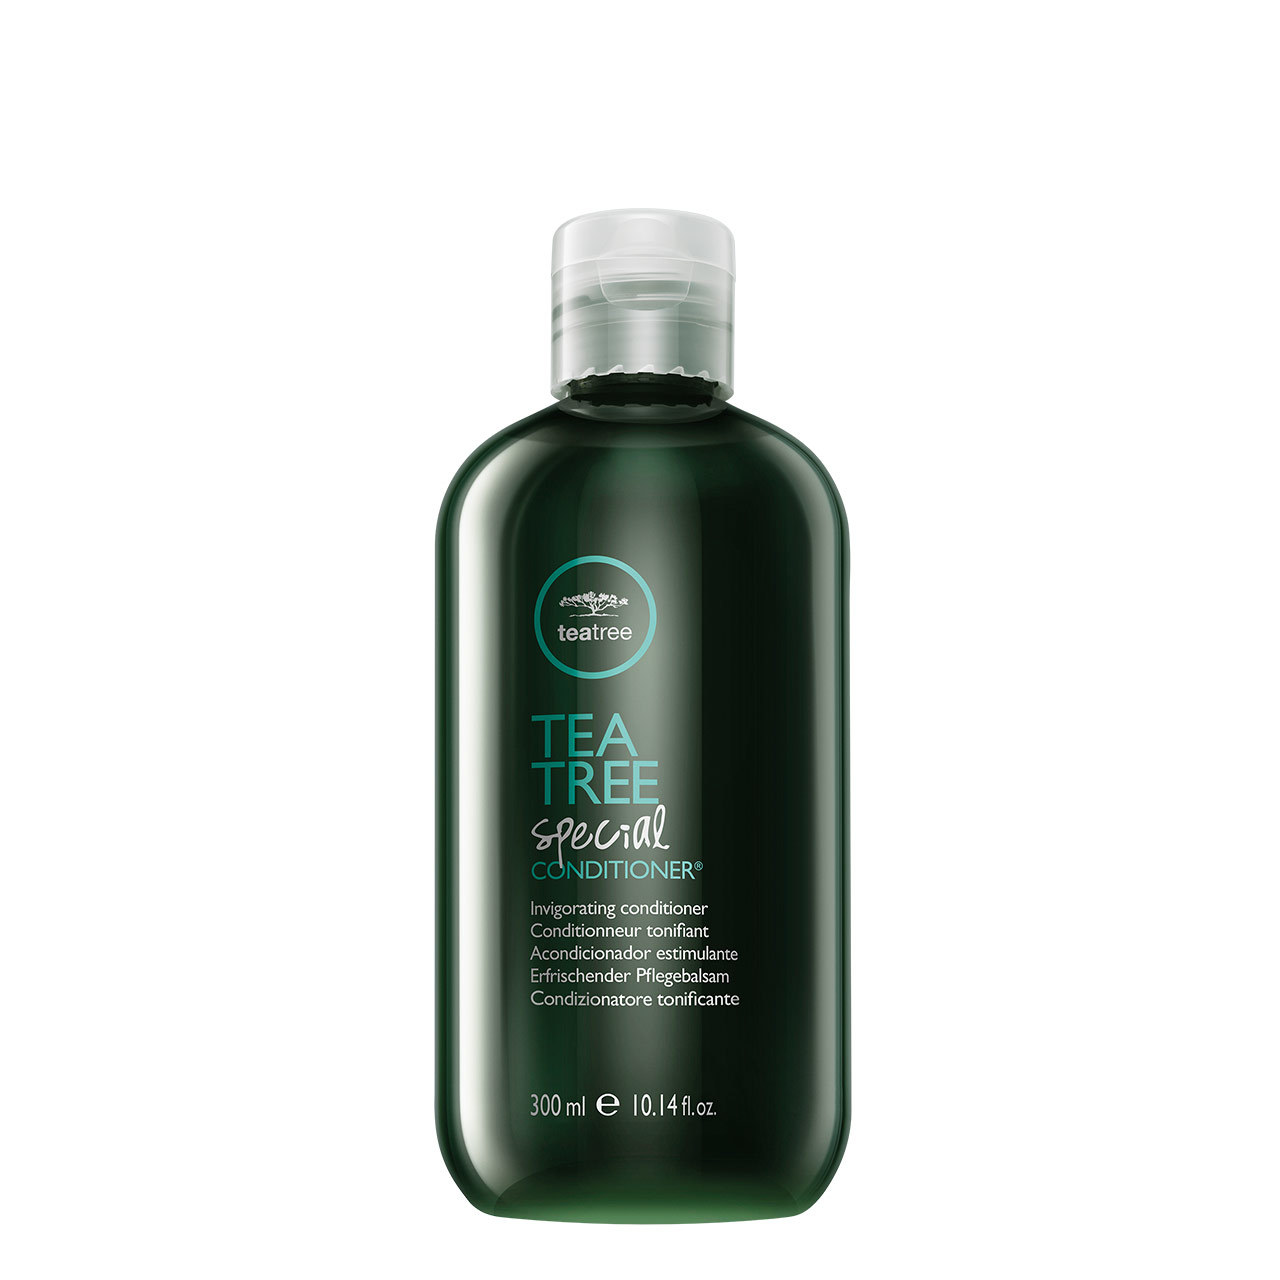 Tea Tree Special Conditioner 300ml, 1000ml